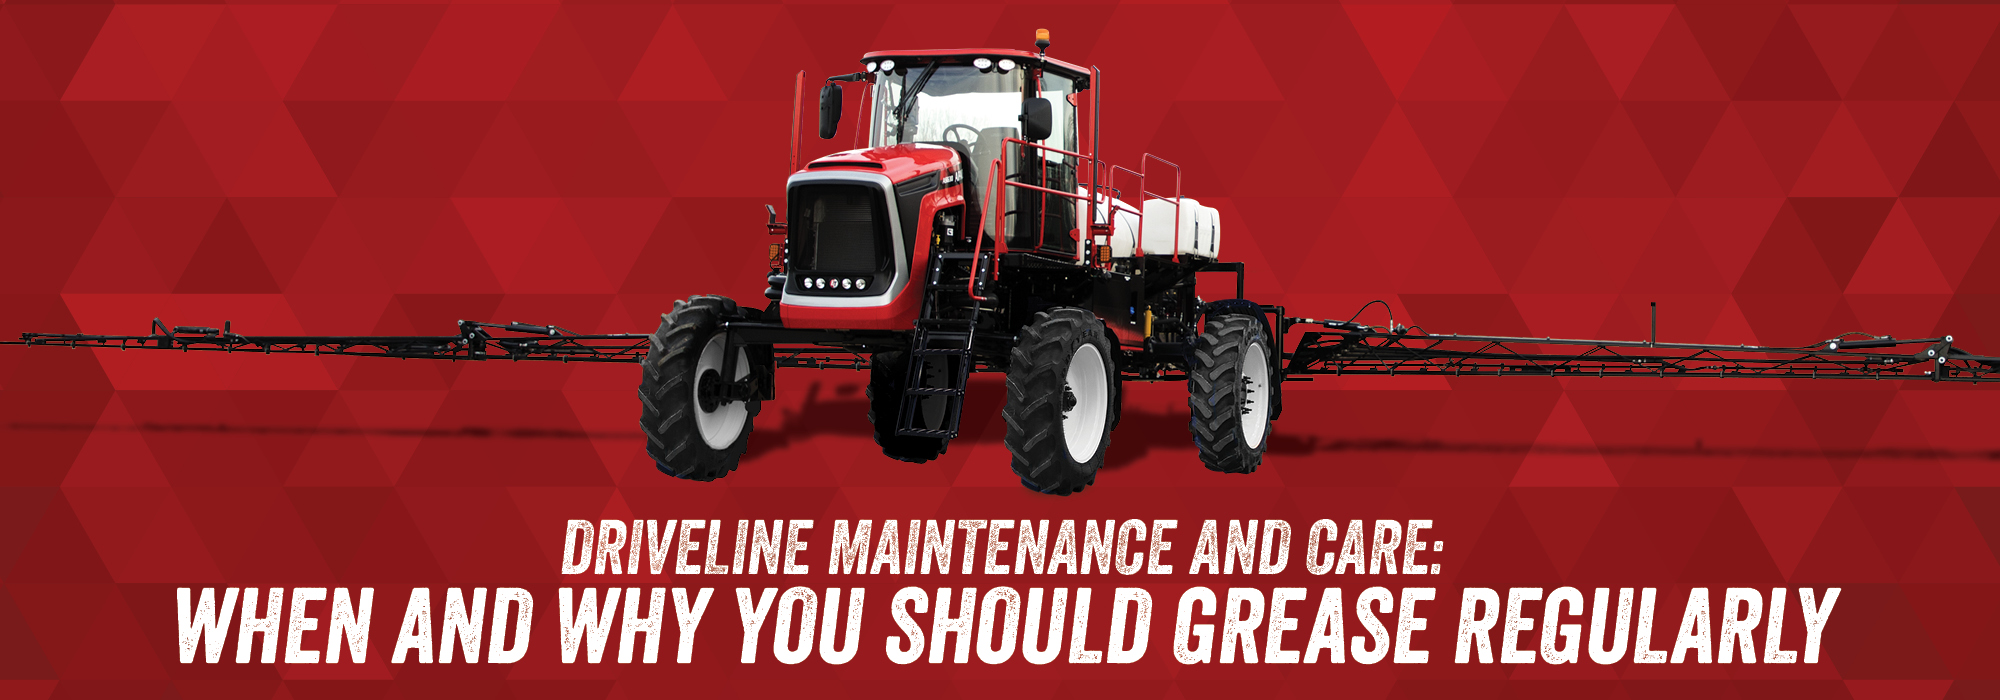 Driveline Maintenance and Care